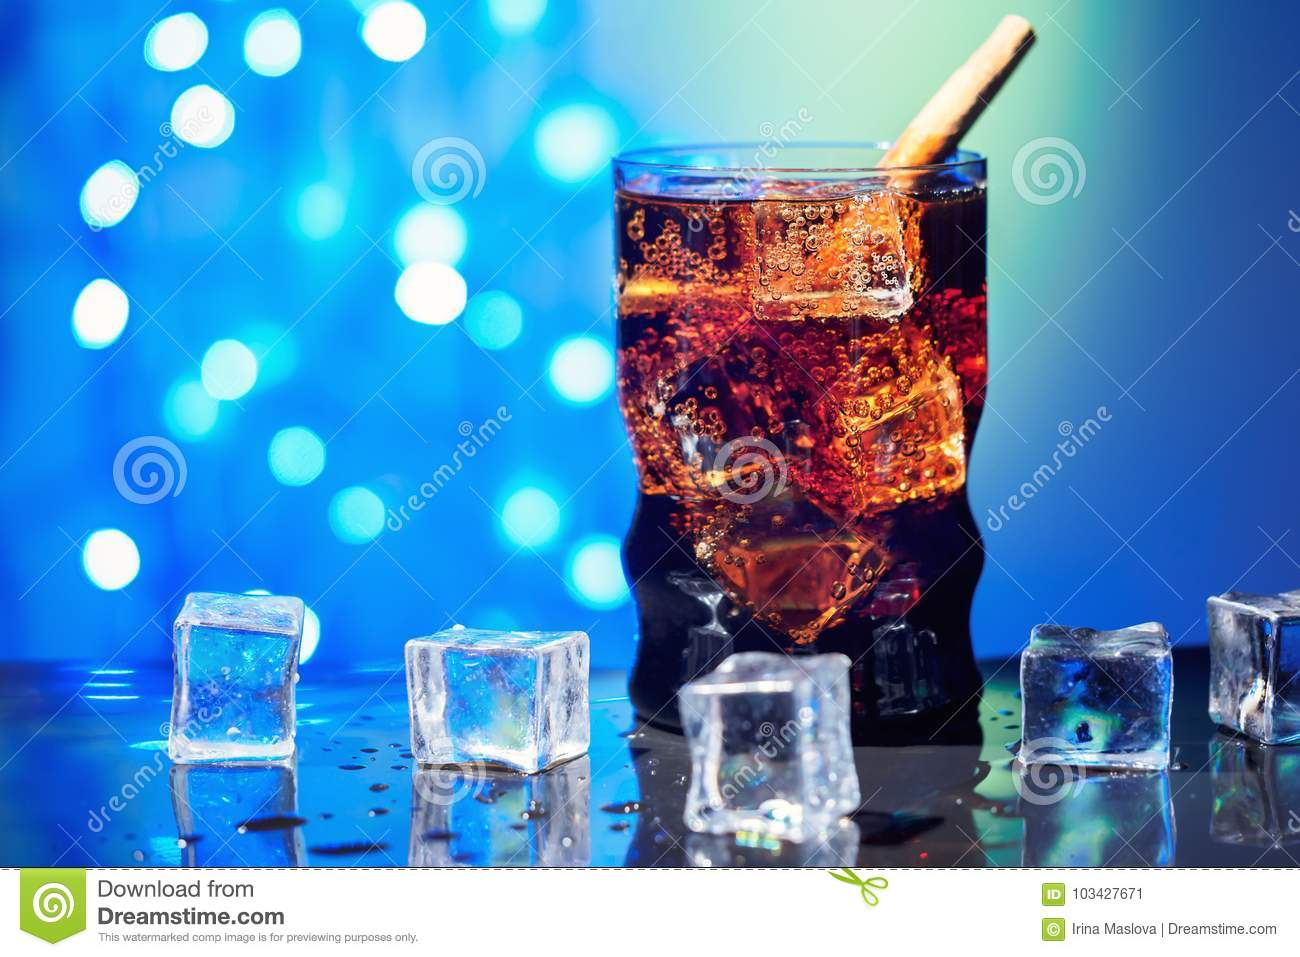 Cola in drinking glass with ice cube sweet sparkling carbonated drink beverage fast food with big calorie